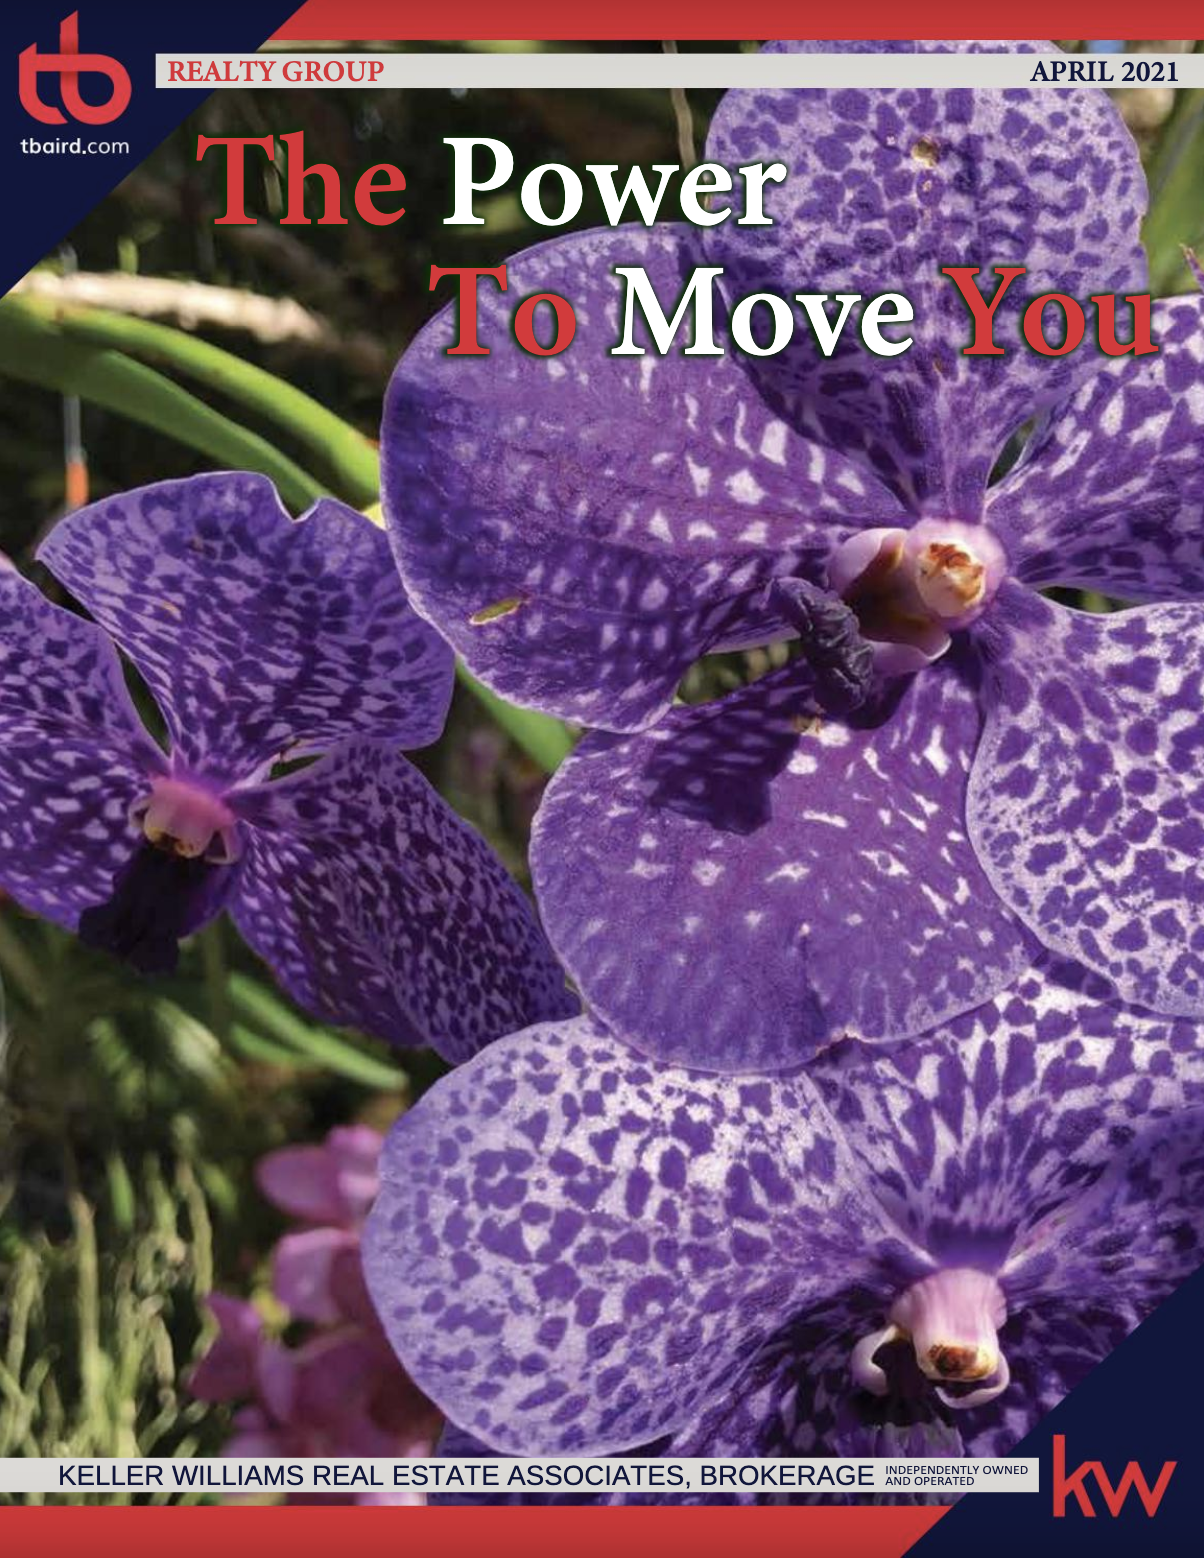 The Power to Move You - April Issue